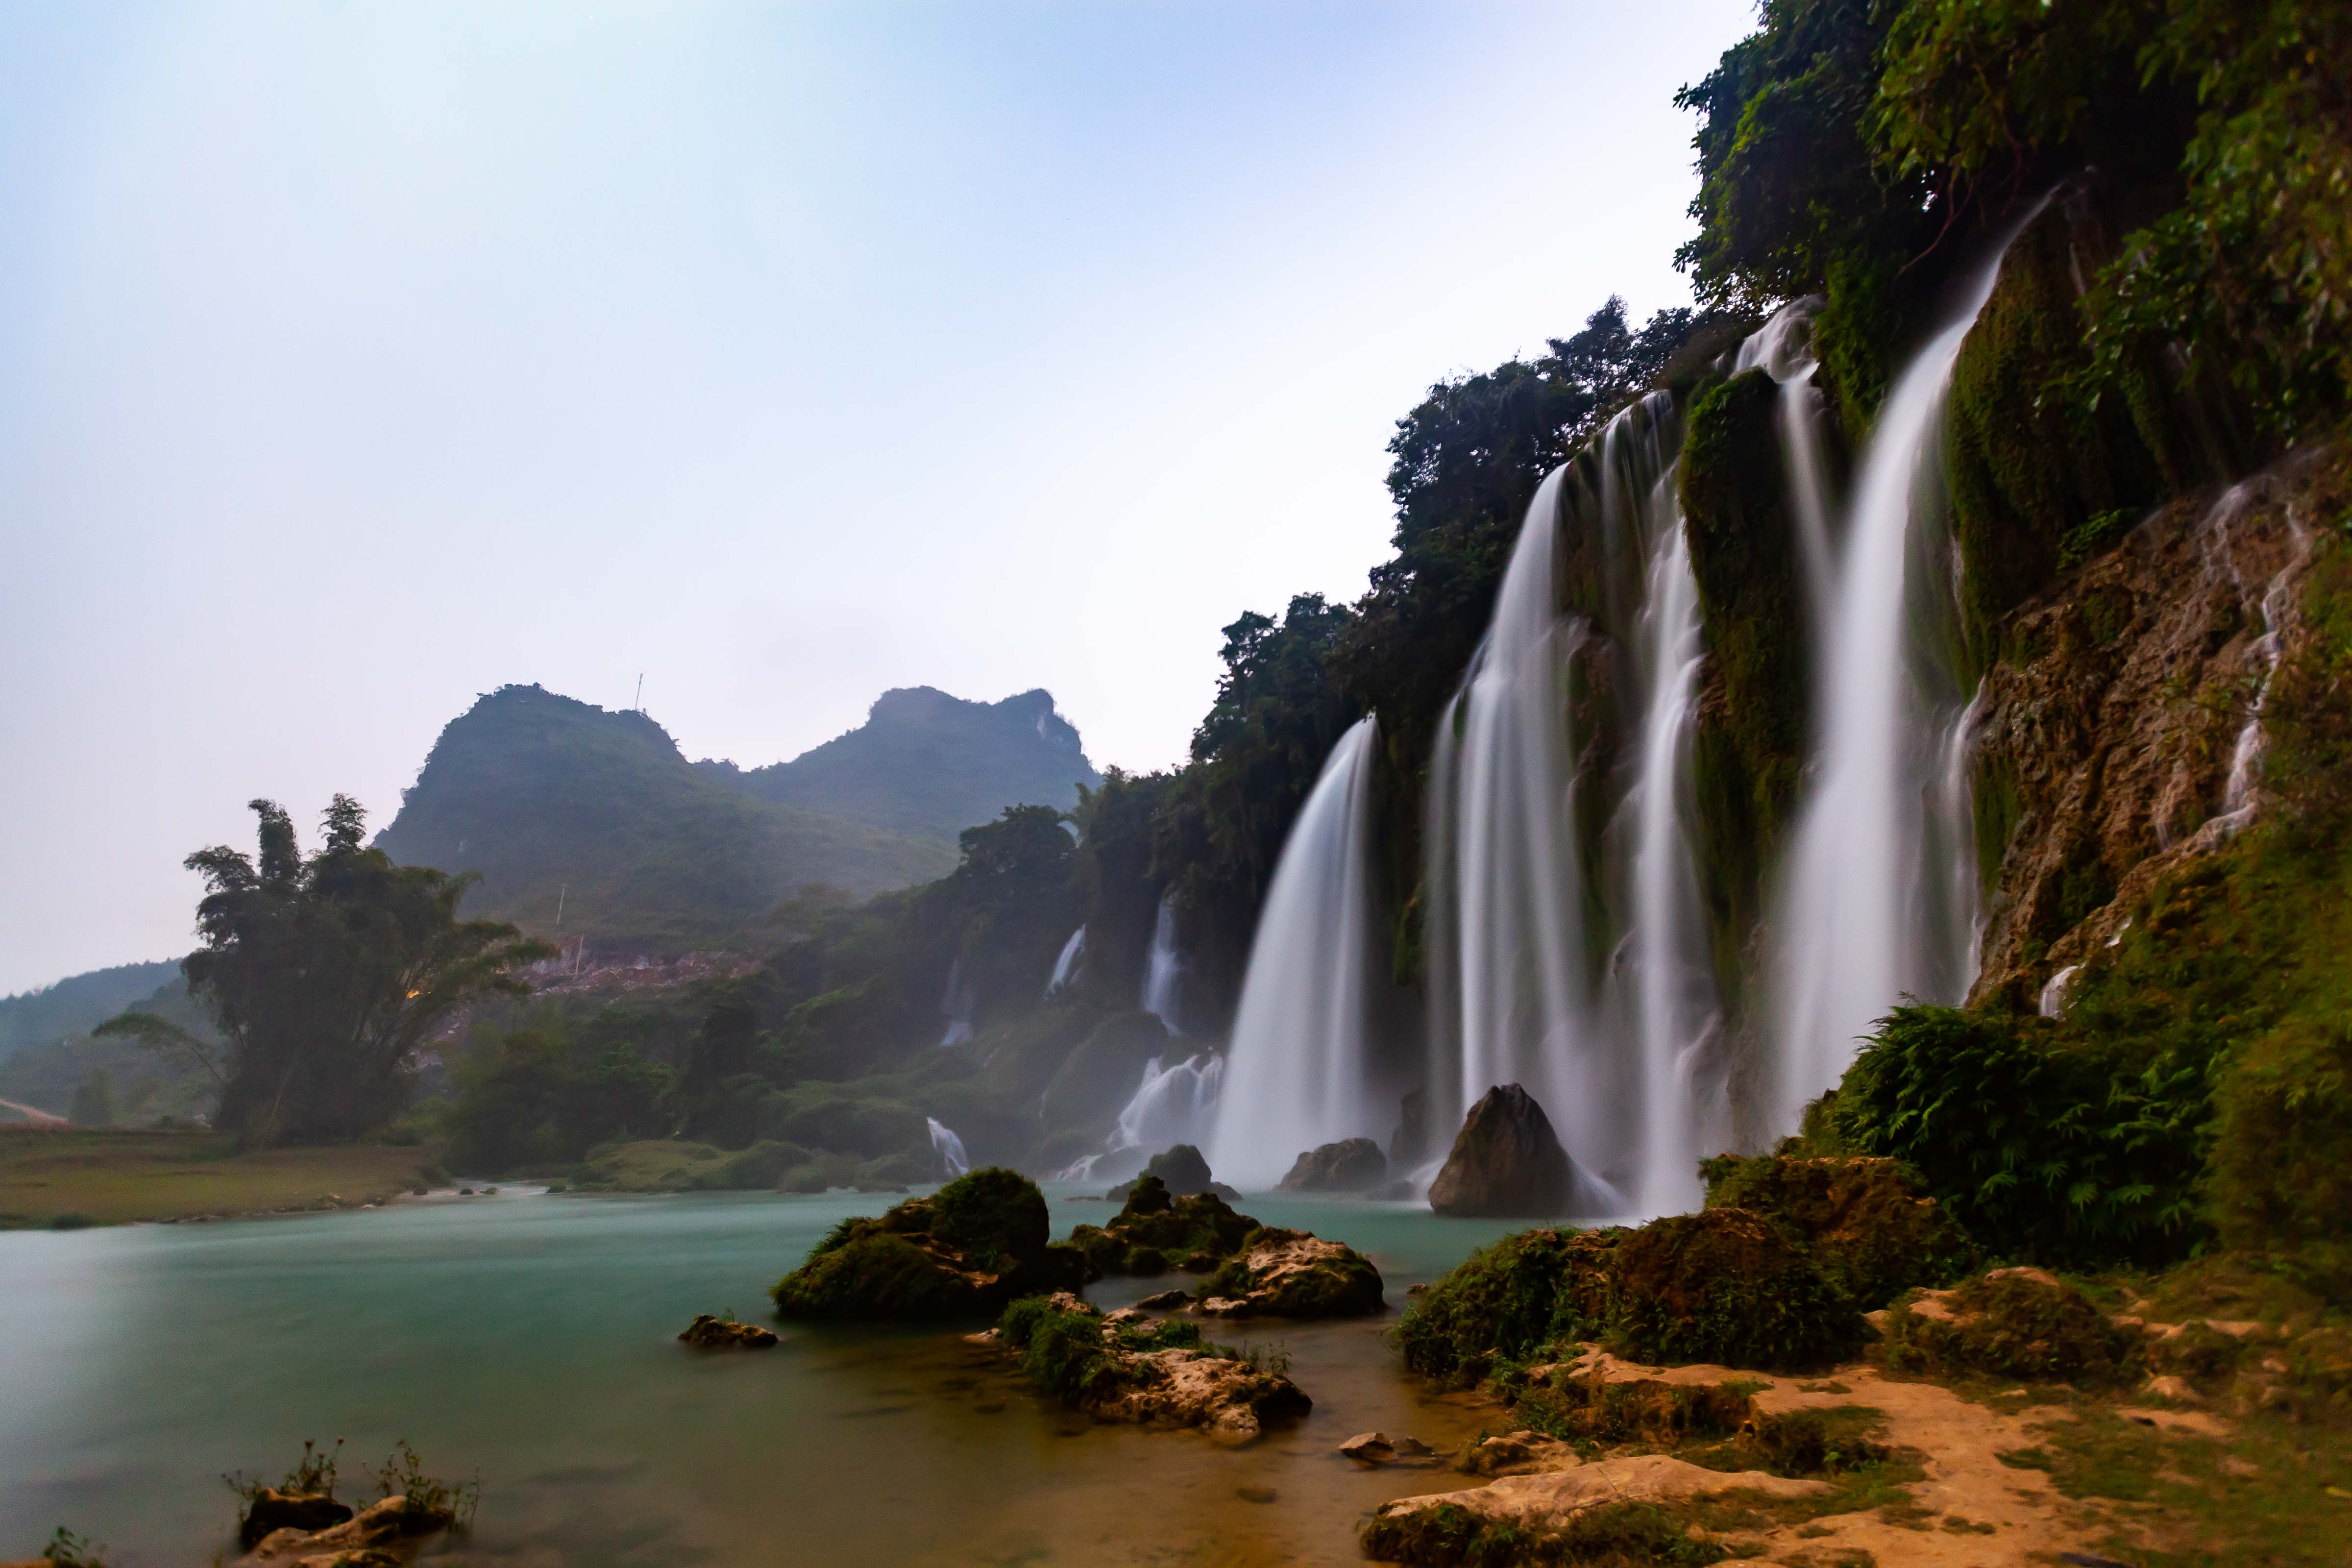 Vietnam, Cao Bang Prov, Waterfall, 2011, IMG 0779